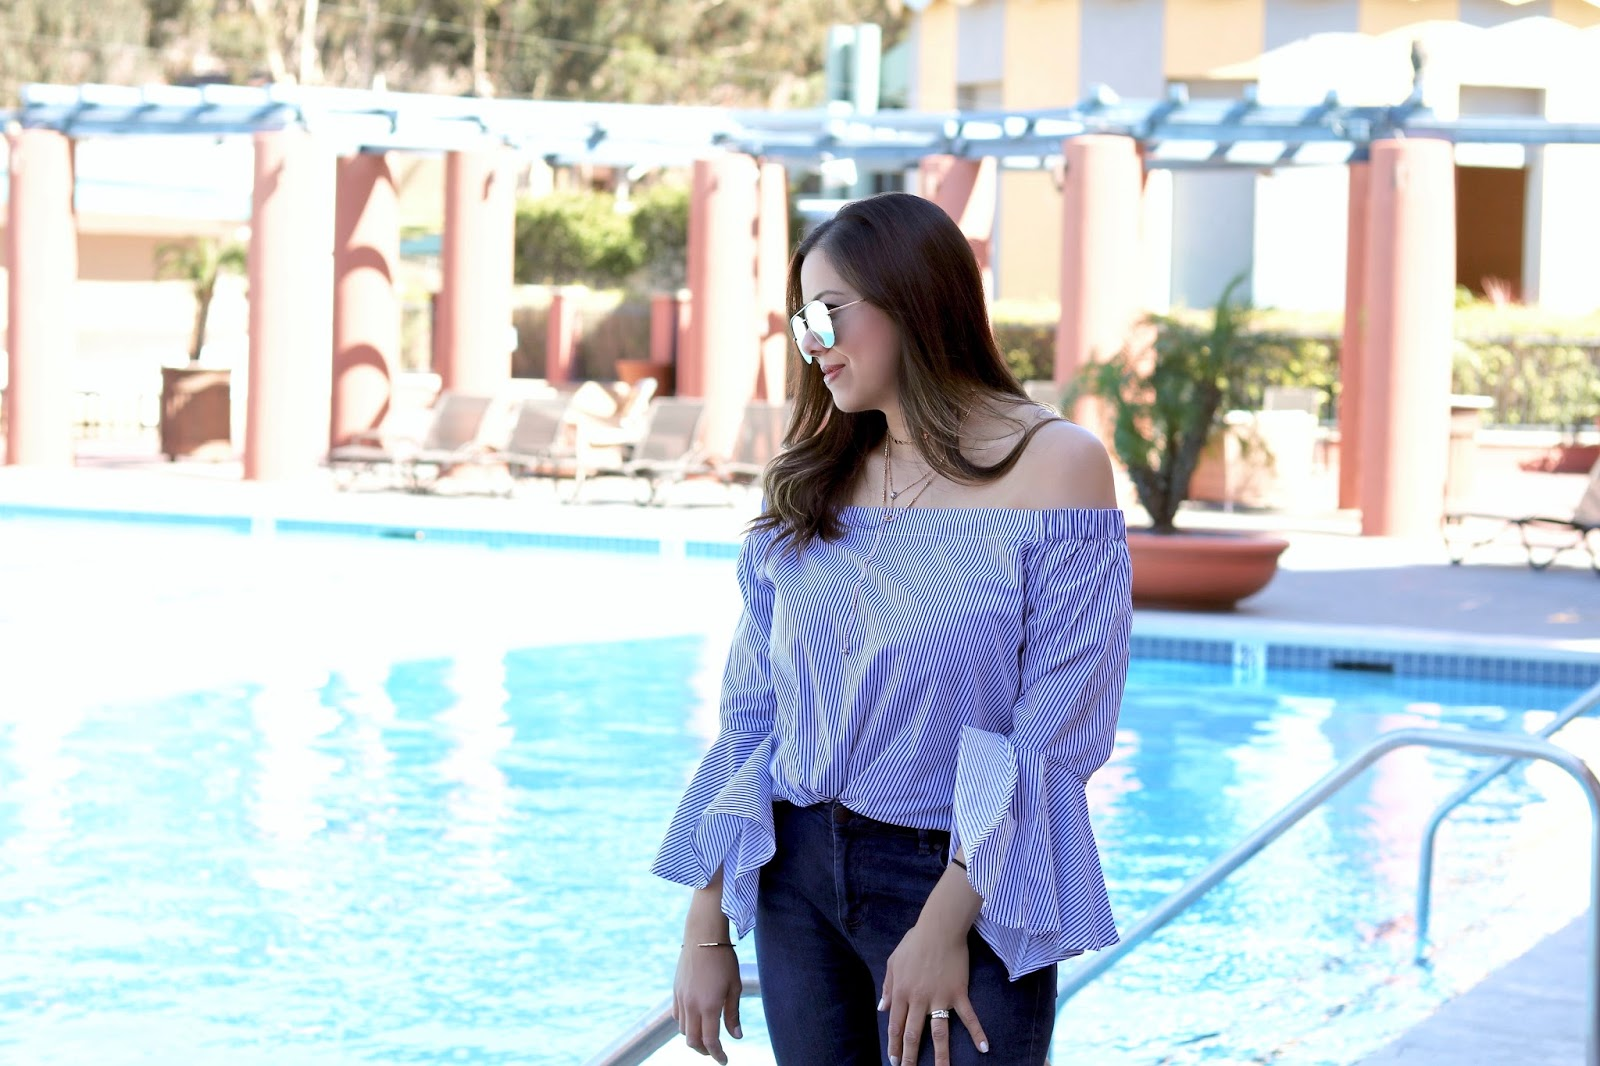 hyatt regency la jolla poolside, chic outfits in san diego, chic jean outfit